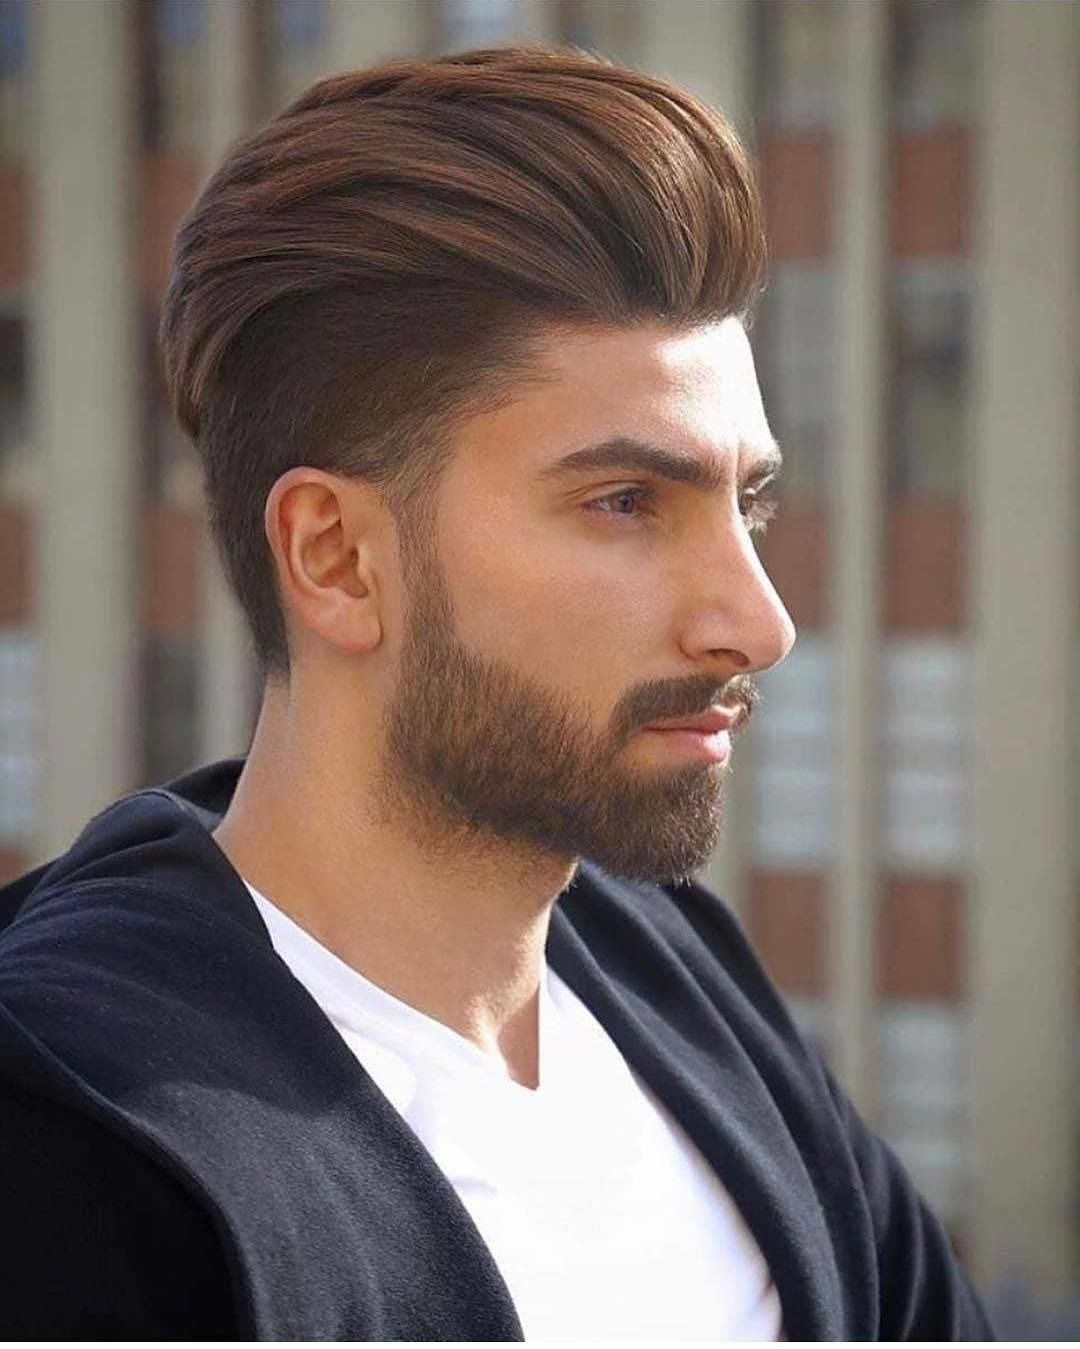 15 Cool Undercut Hairstyles For Men Men S Hairstyles Undercut Hairstyles Mens Hairstyles Undercut Mens Hairstyles